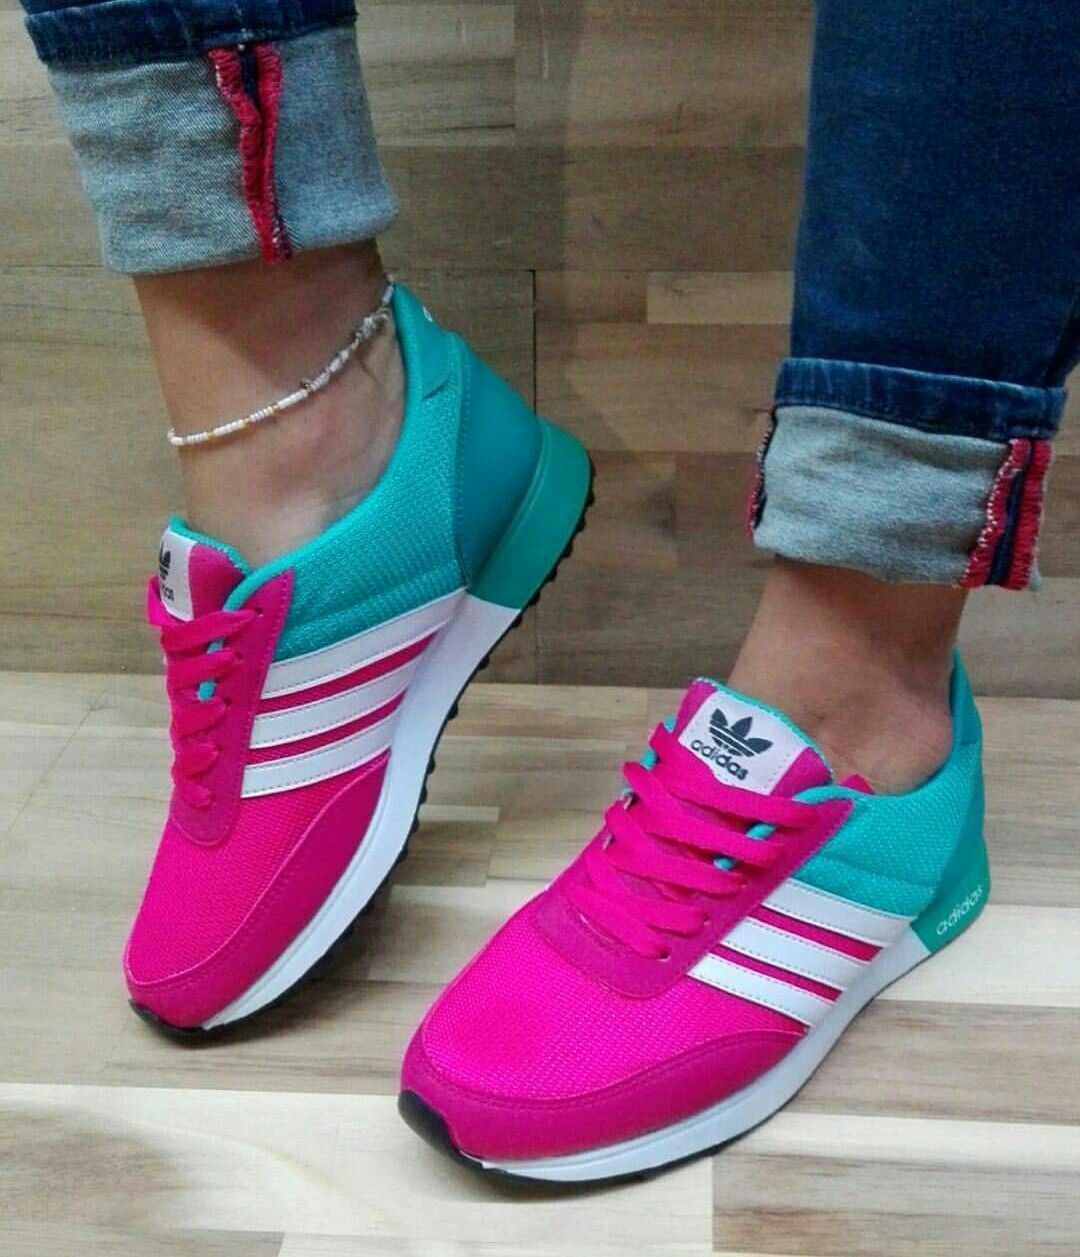 Astra (3 colors) | Sneakers fashion, Fashion, Sneakers